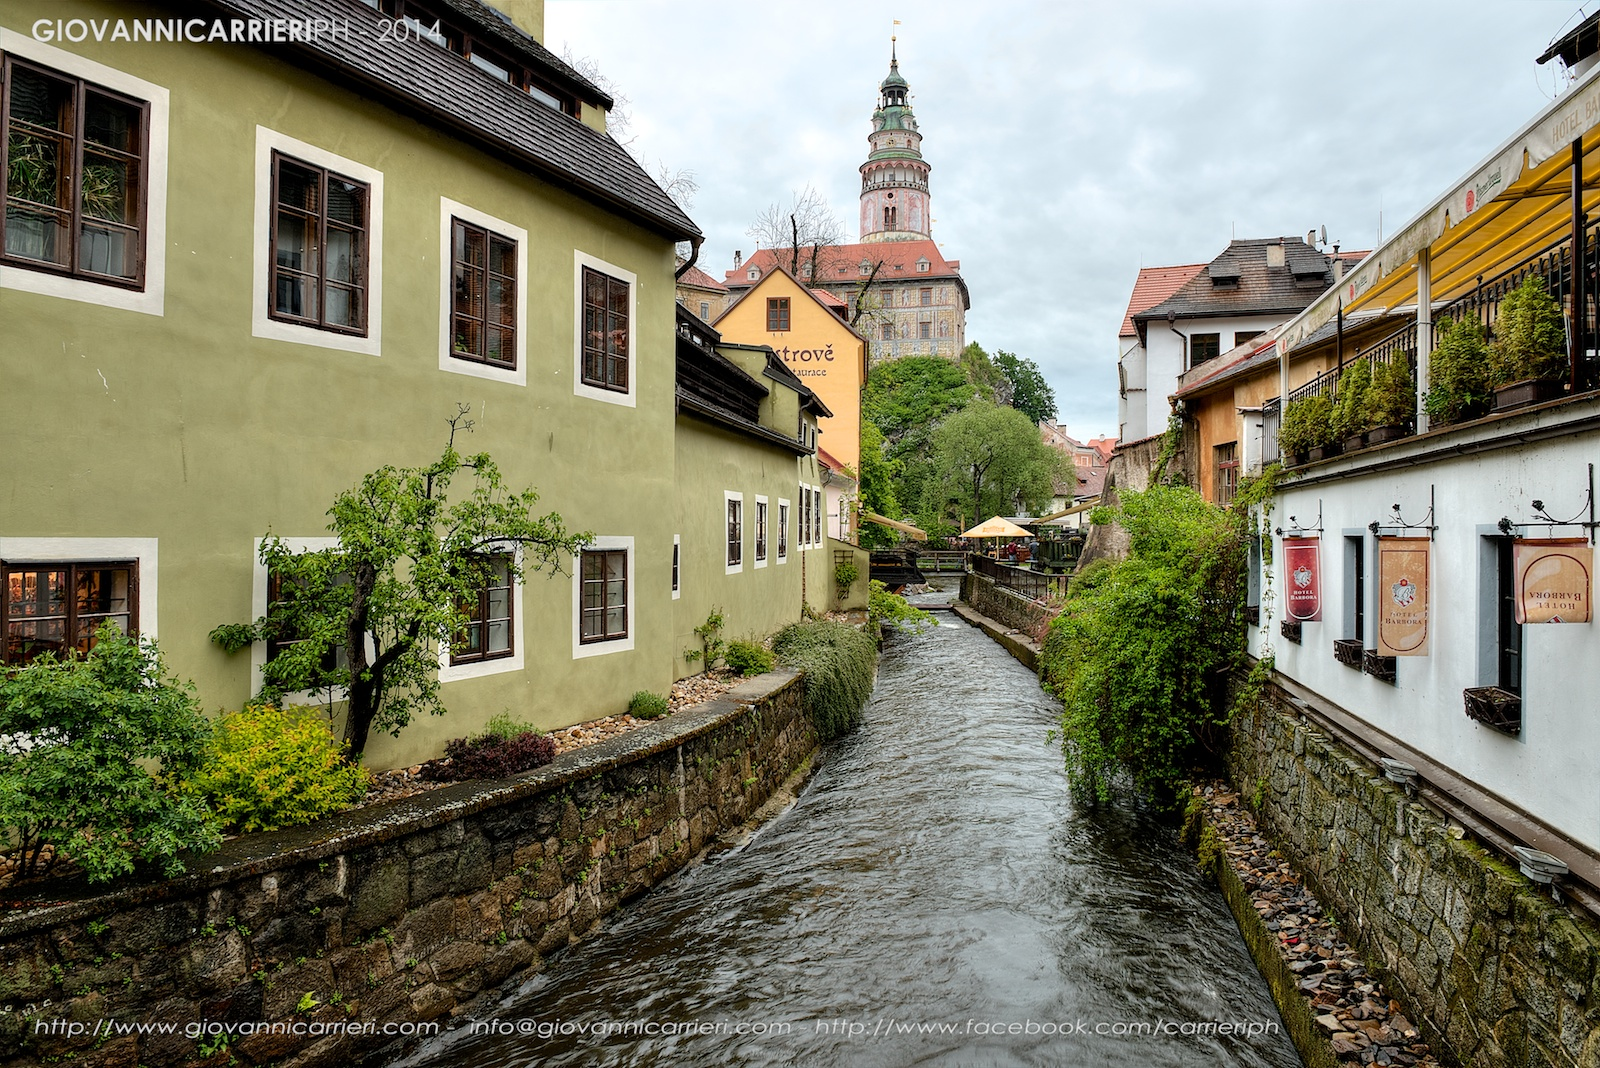 The channel of the Vltava river runs through the town of Český Krumlov